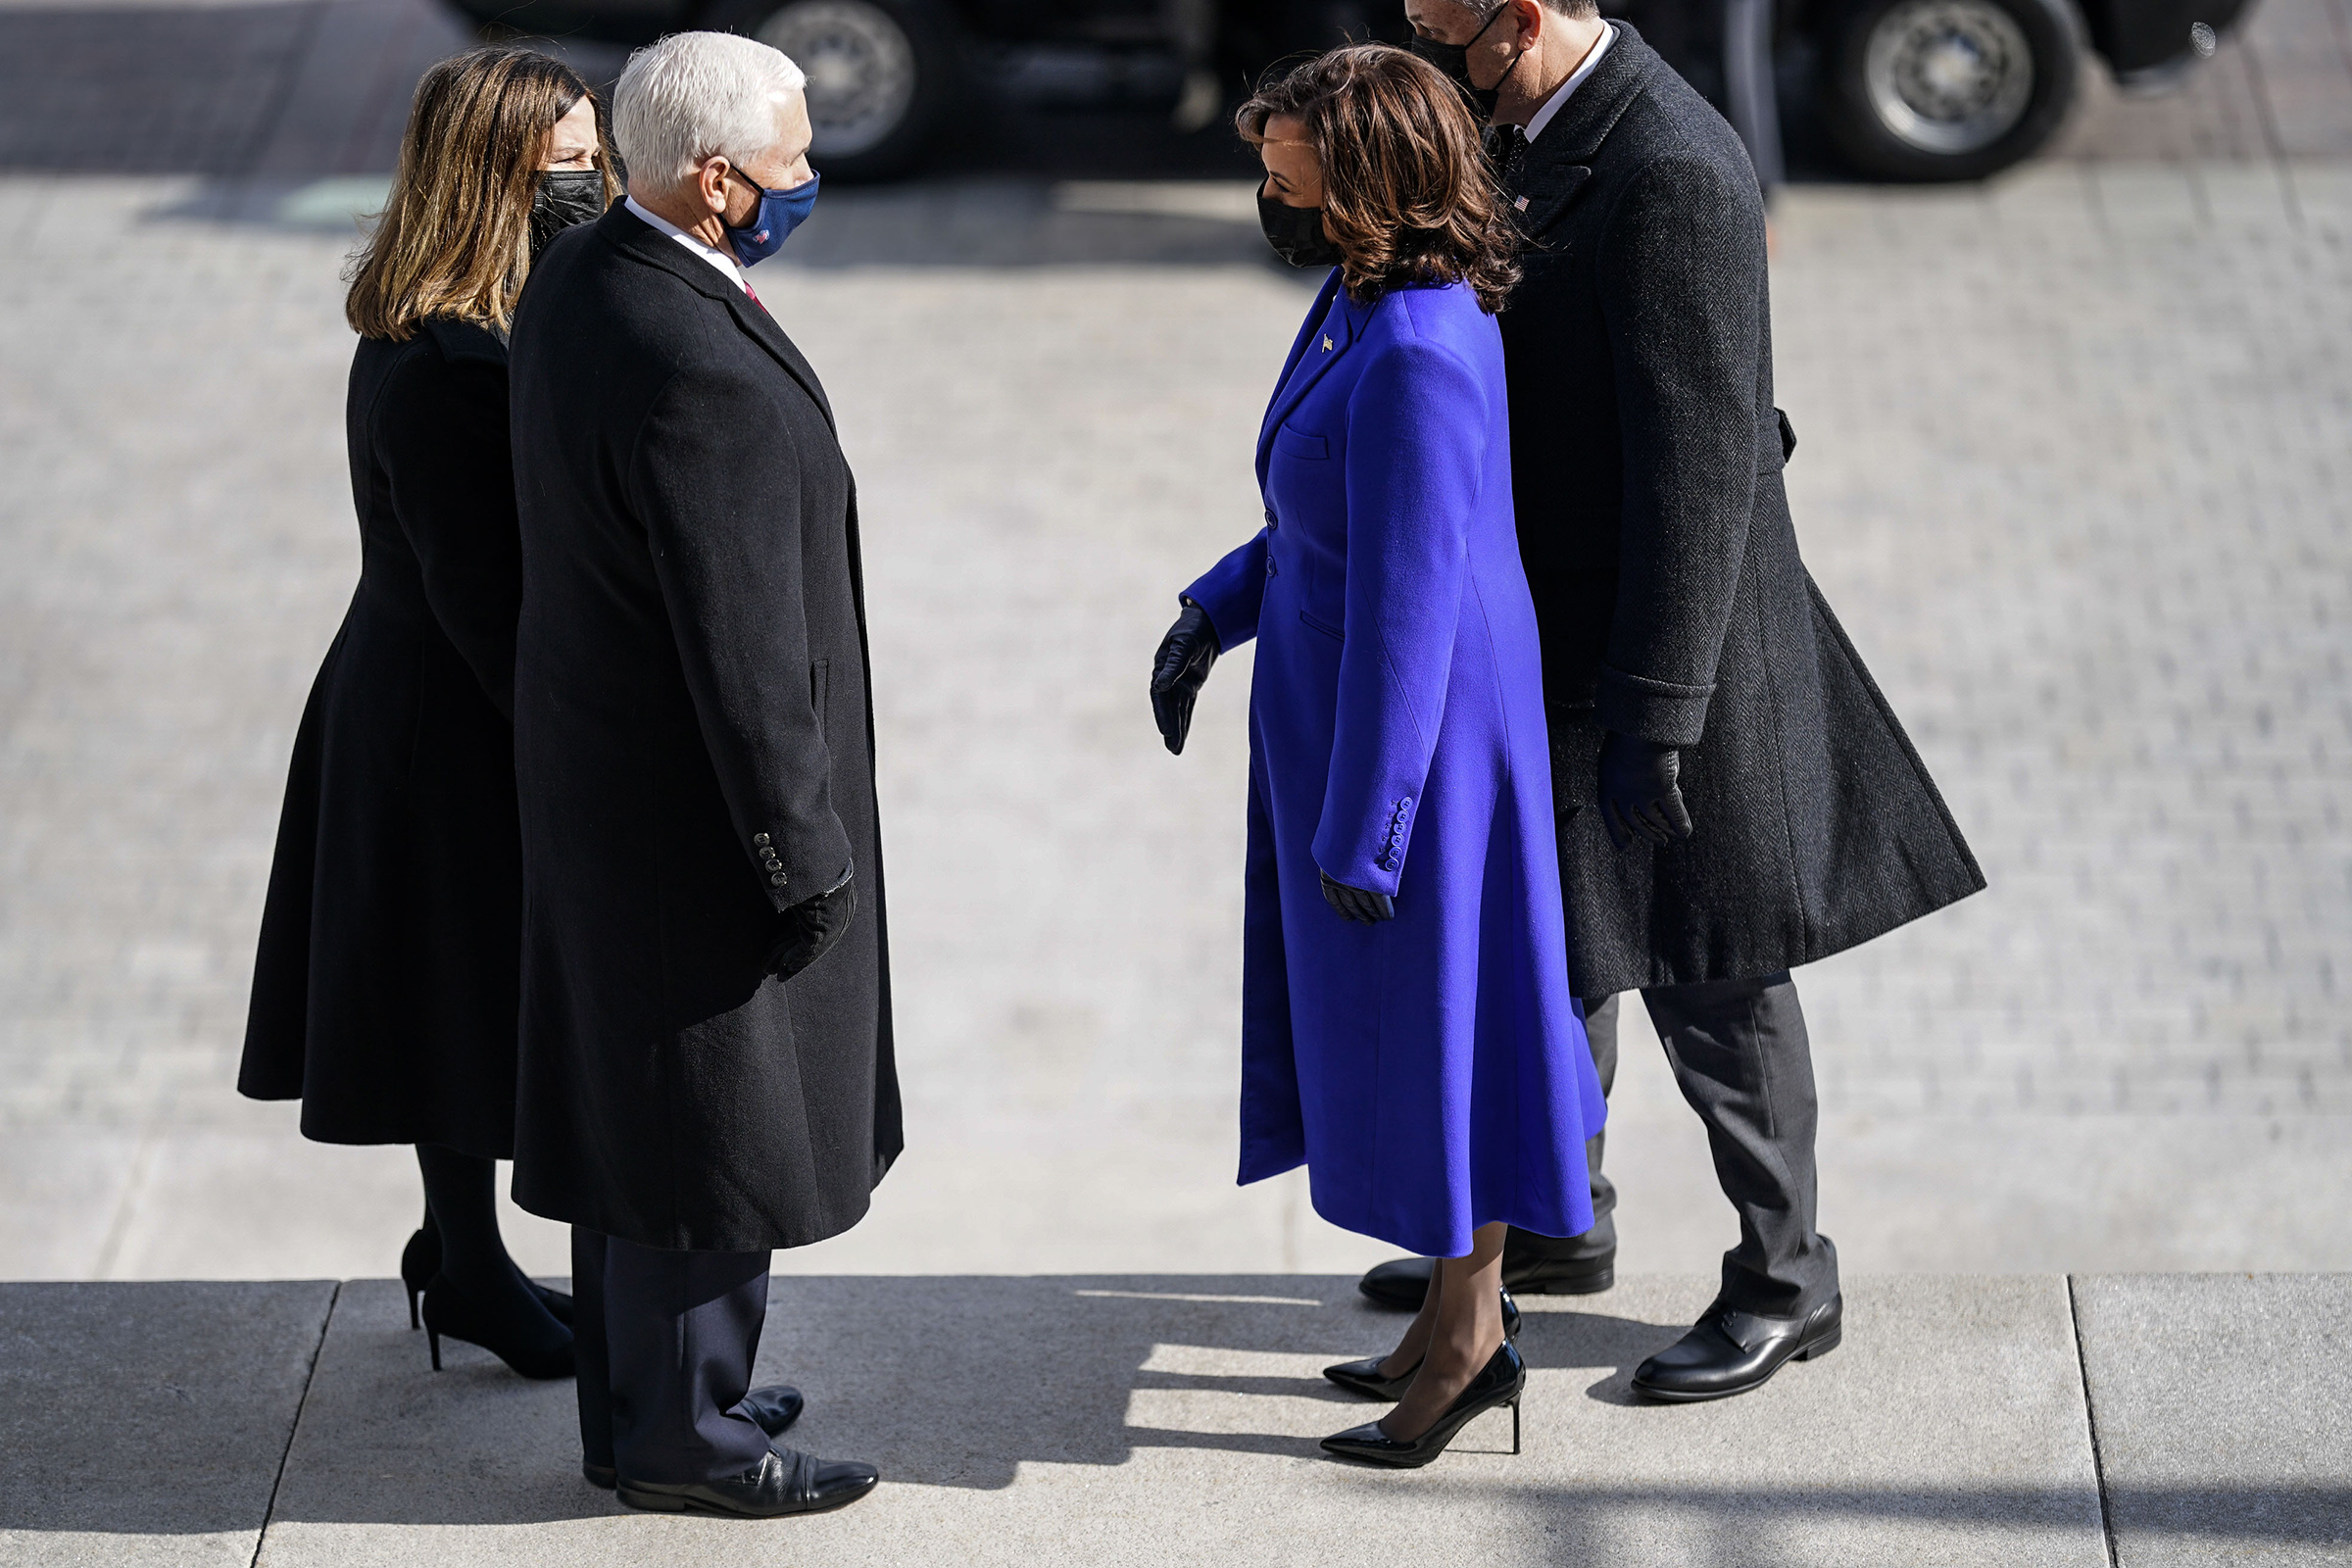 Former Vice President Mike Pence and his wife, Karen Pence speak with Vice President Kamala Harris and Doug Emhoff, after the inauguration.